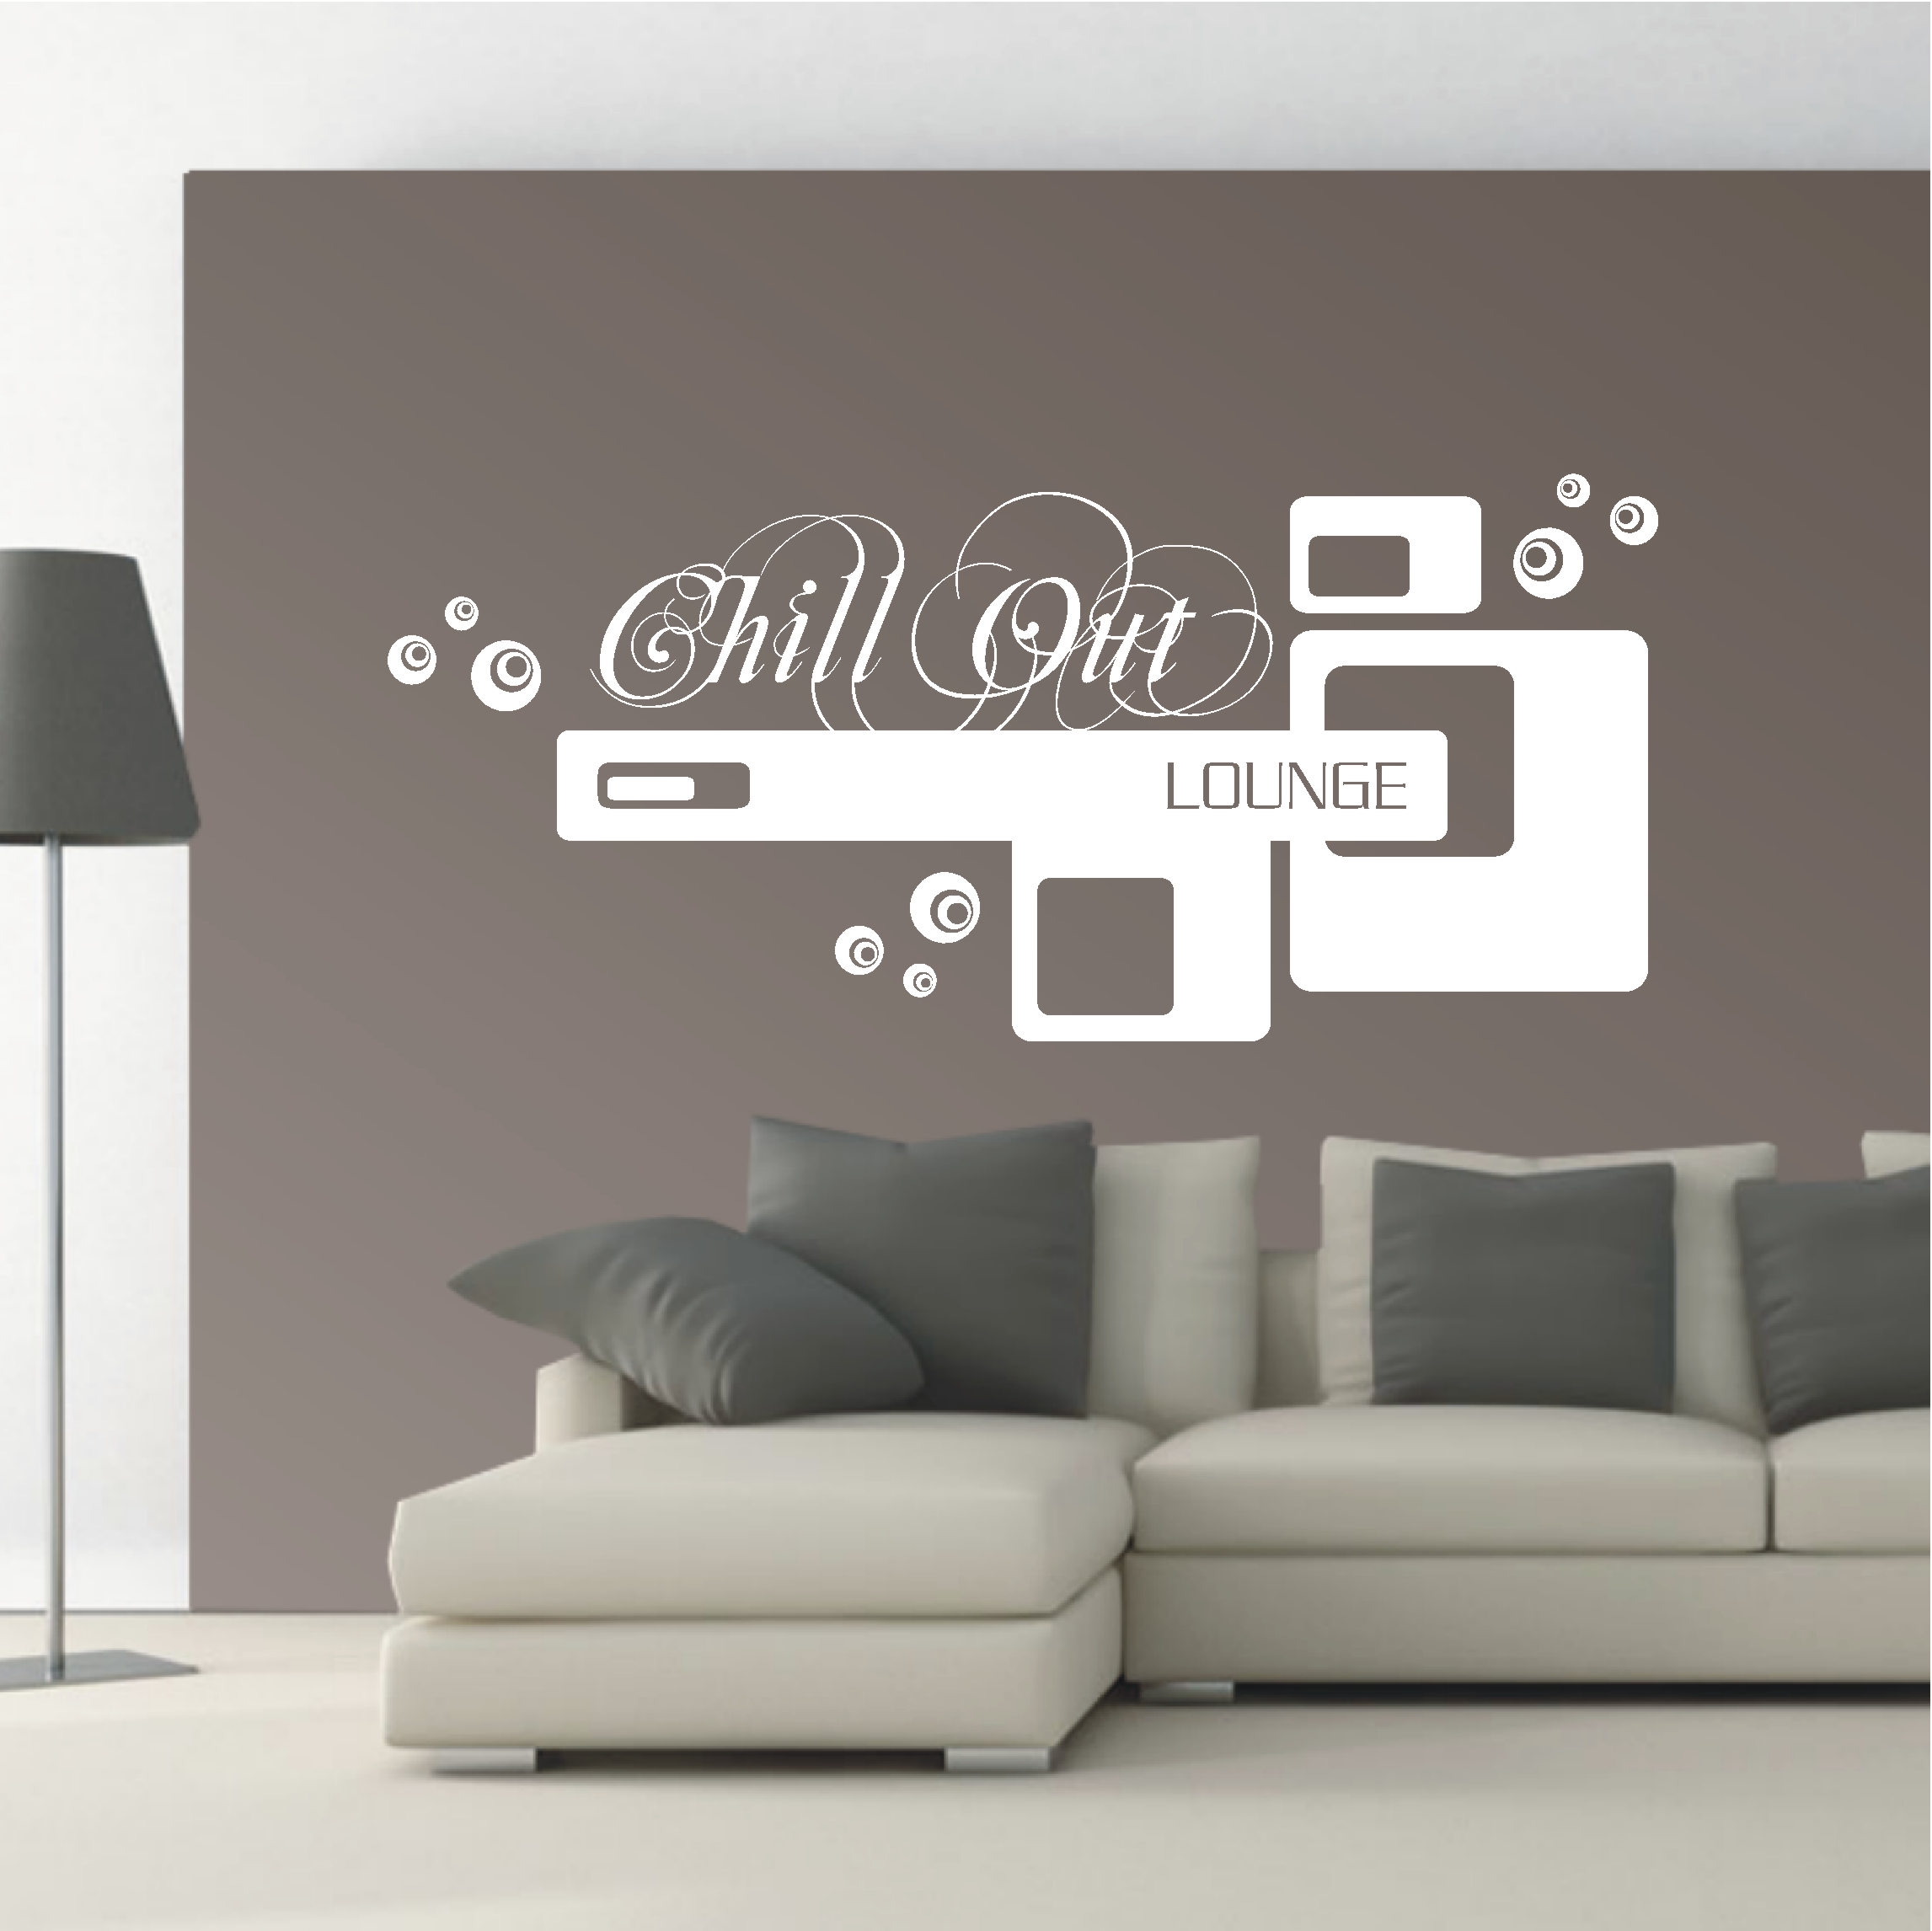 Chillout Lounge Wohnzimmer Deko Shop 24 De Wandtattoo Chill Out Lounge Deko Shop 24 De